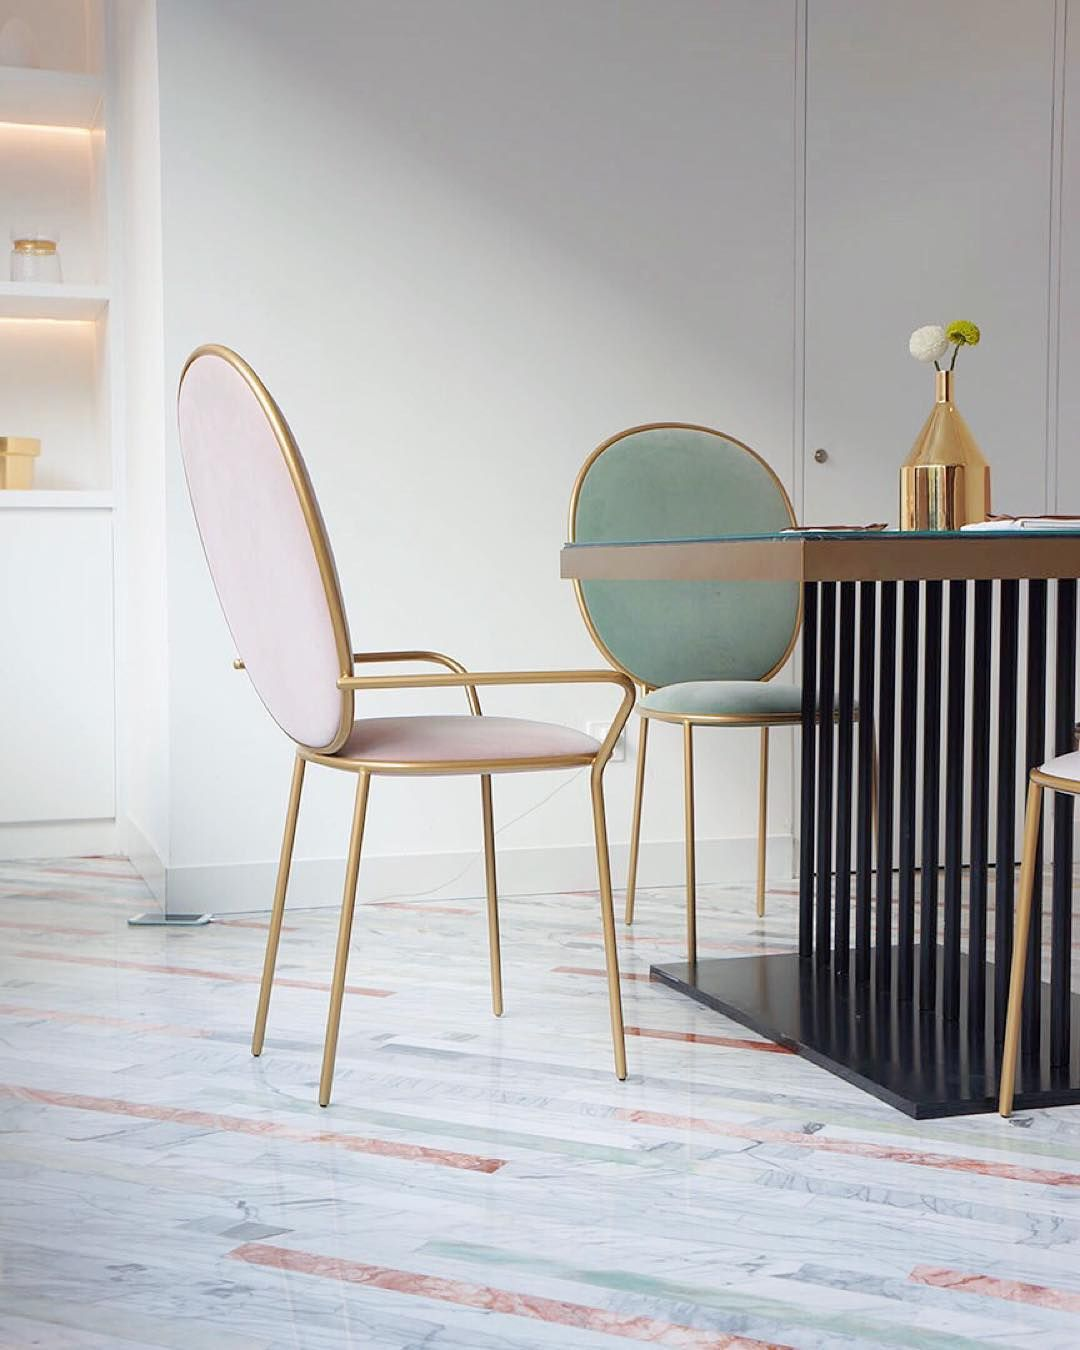 Dining Chair Trends For 2016: Stay Chairs By Nika Zupanc For Sé